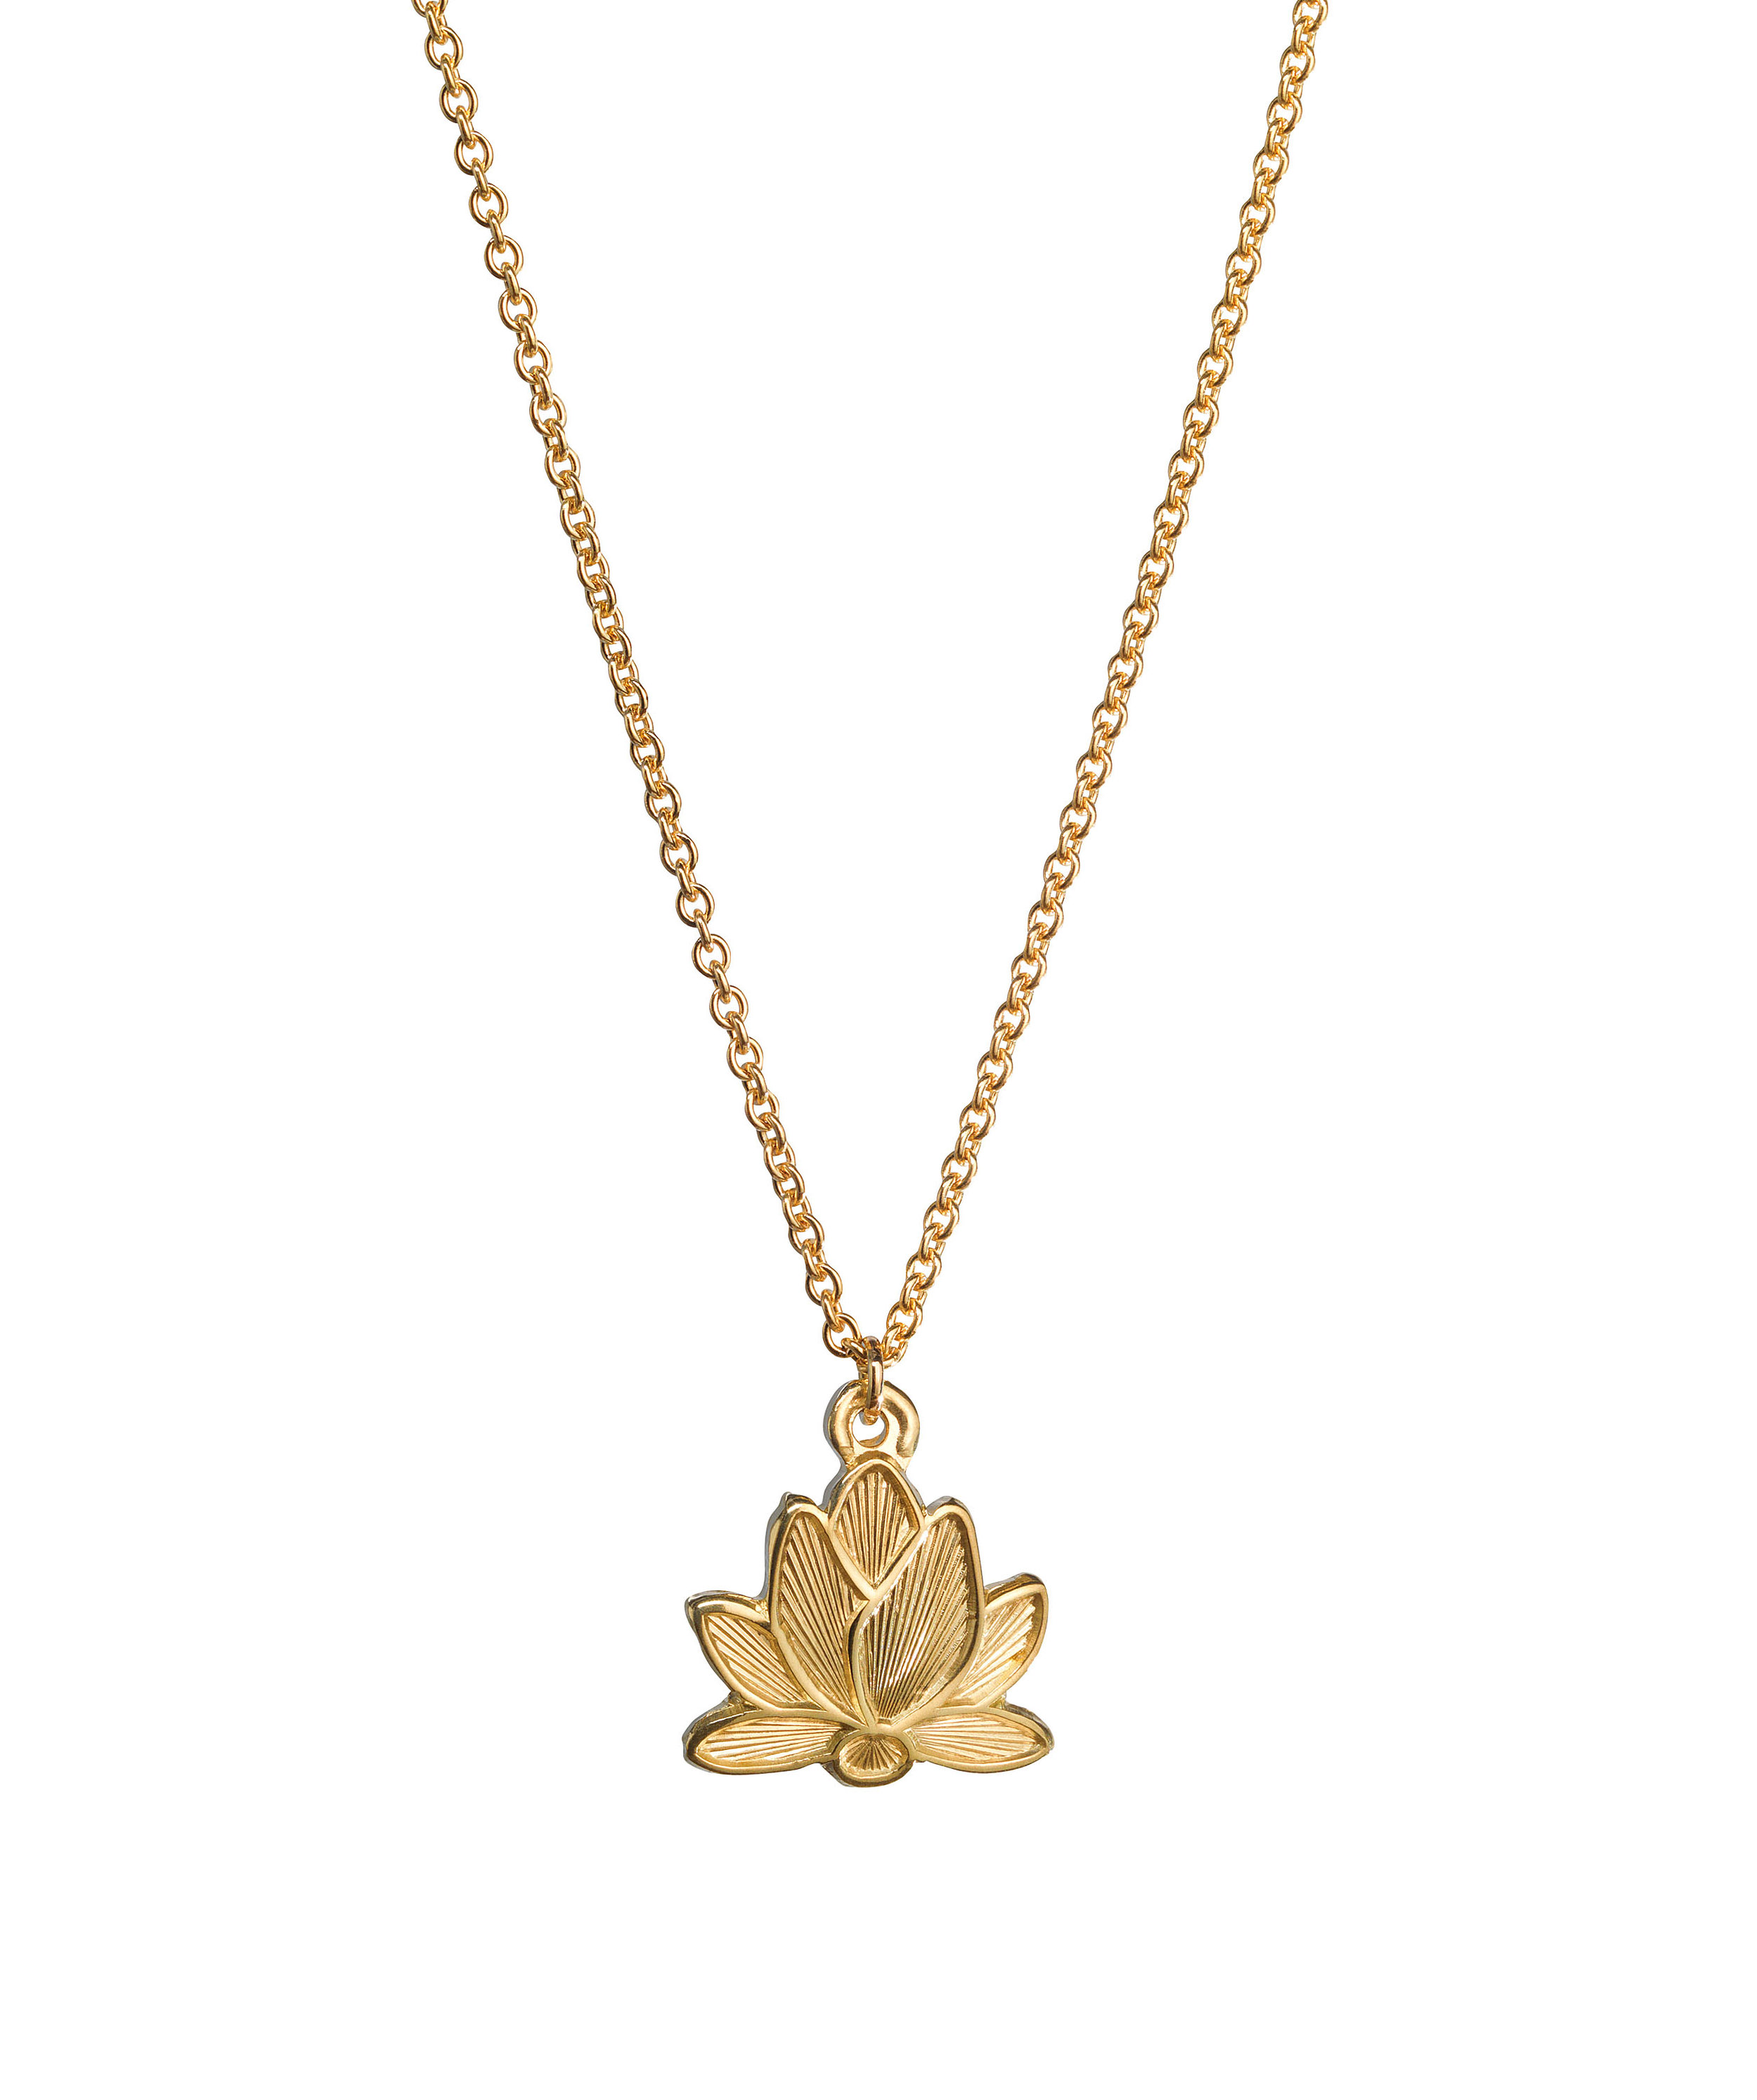 28bec39245c49b Lotus flower necklace 14k gold — mani kamini